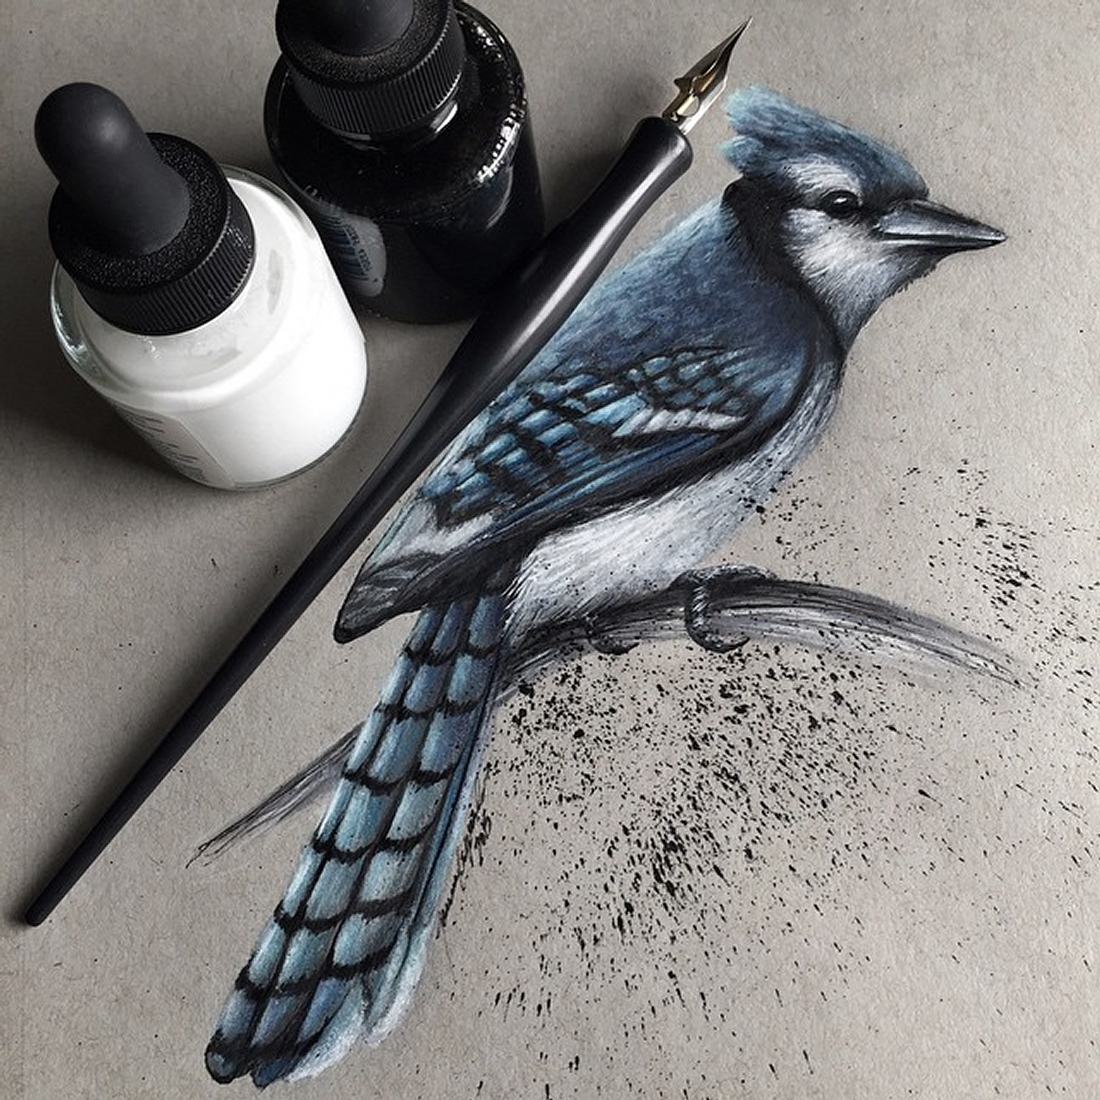 04-Blue-Jay-Jonathan-Martinez-Realistic-Pencil-Animal-Drawings-www-designstack-co